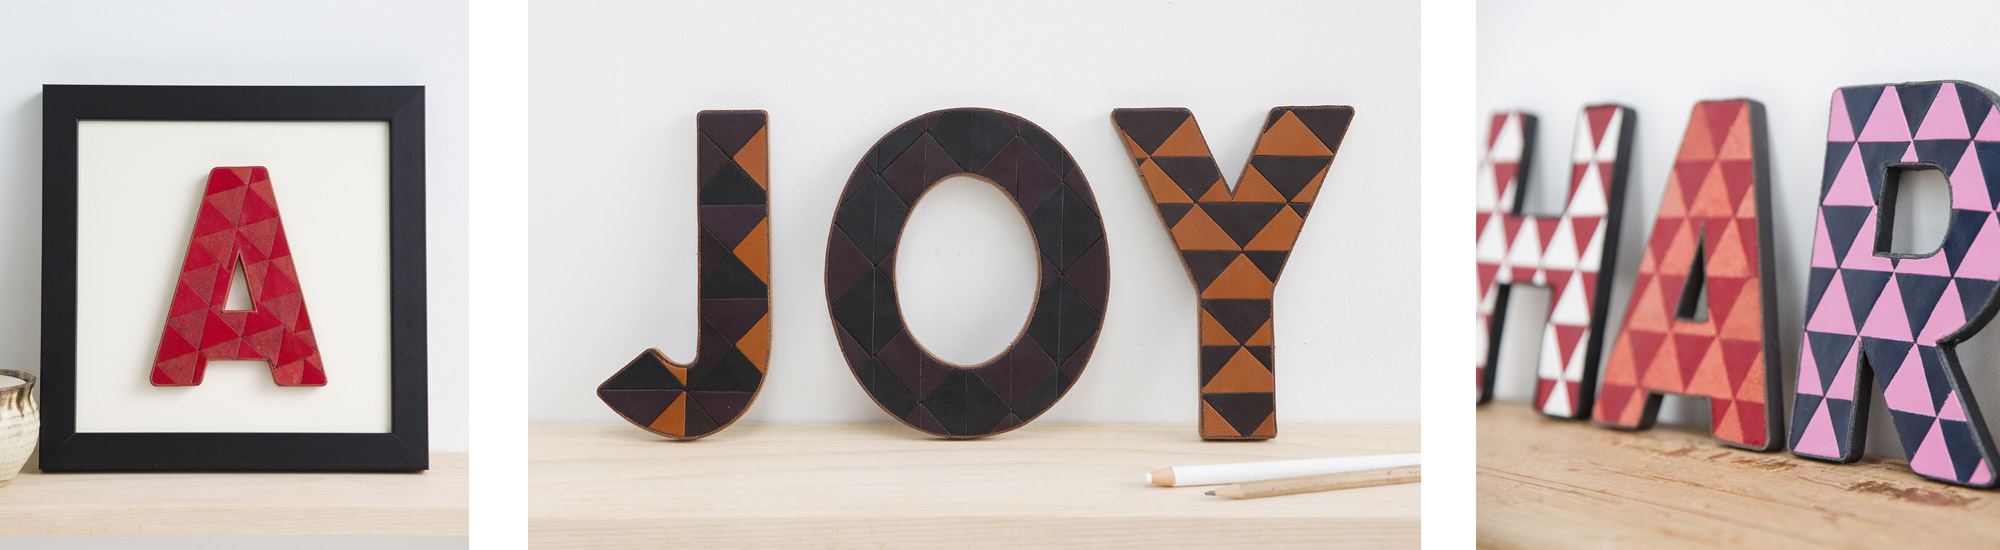 SHOP RECYCLED LEATHER LETTERS NOW